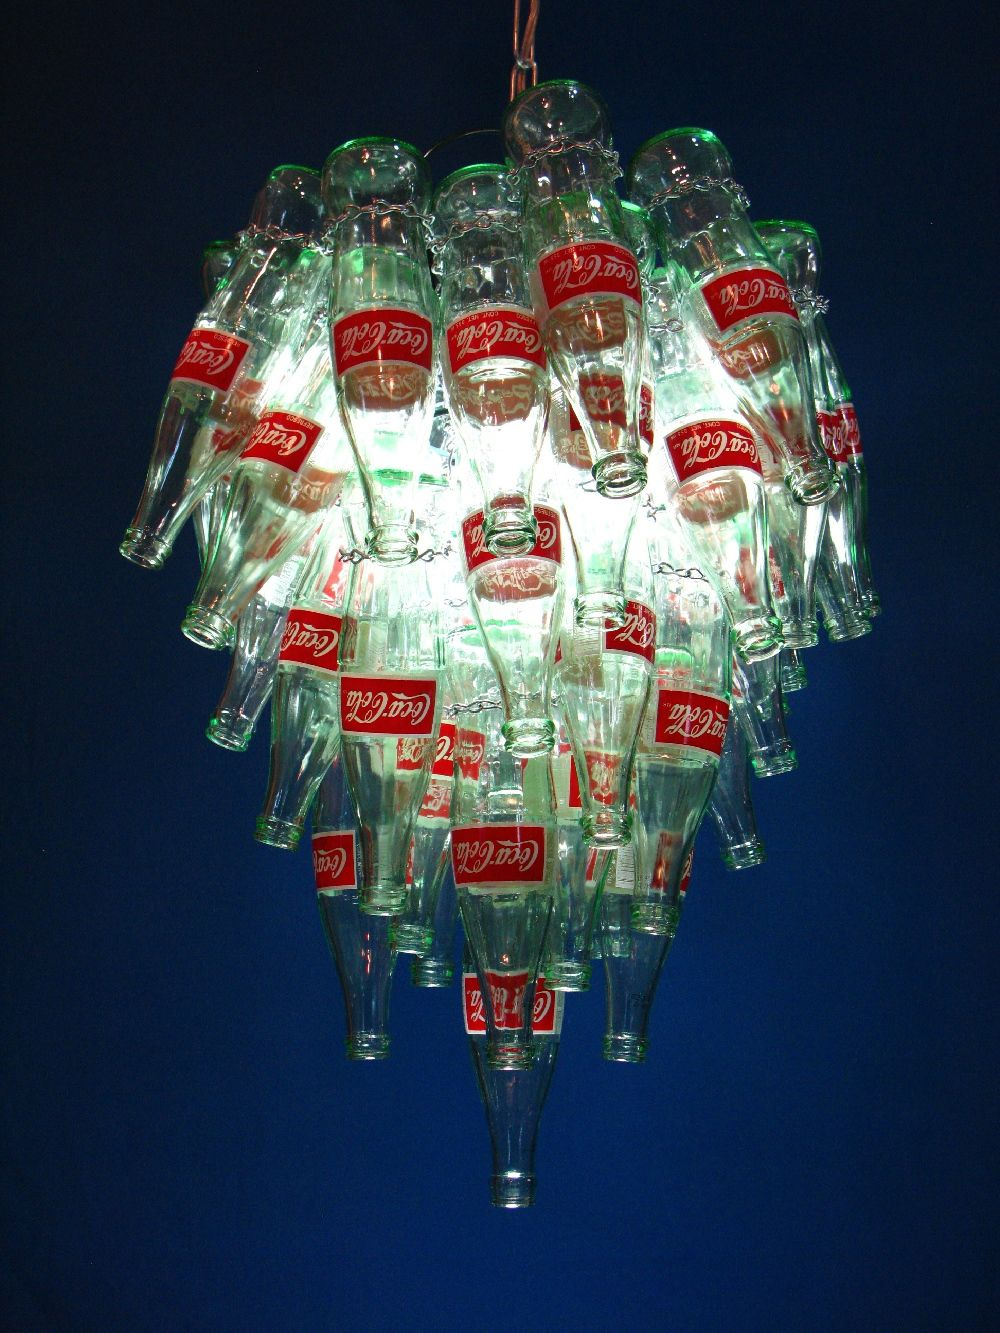 Vintage coke bottle chandelier created using 54 upcycled coke vintage coke bottle chandelier created using 54 upcycled coke bottles attached to a metal basket in a tapered cluster with a repurposed cake pan for the aloadofball Gallery